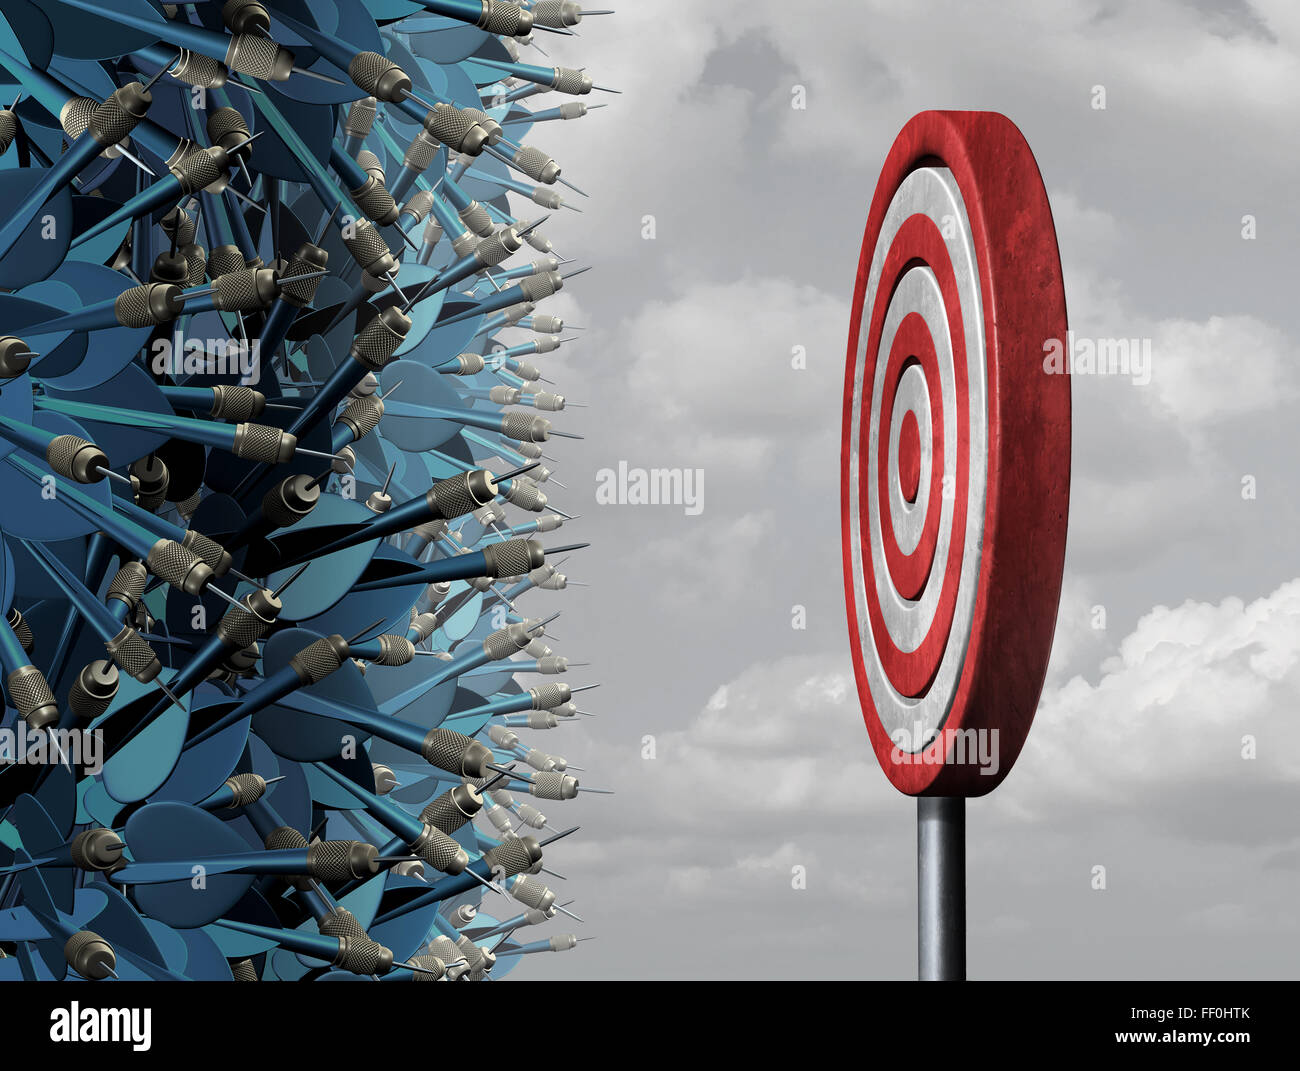 Crowded target business concept as a group of confused darts congested in a bottleneck  aiming for a common goal - Stock Image